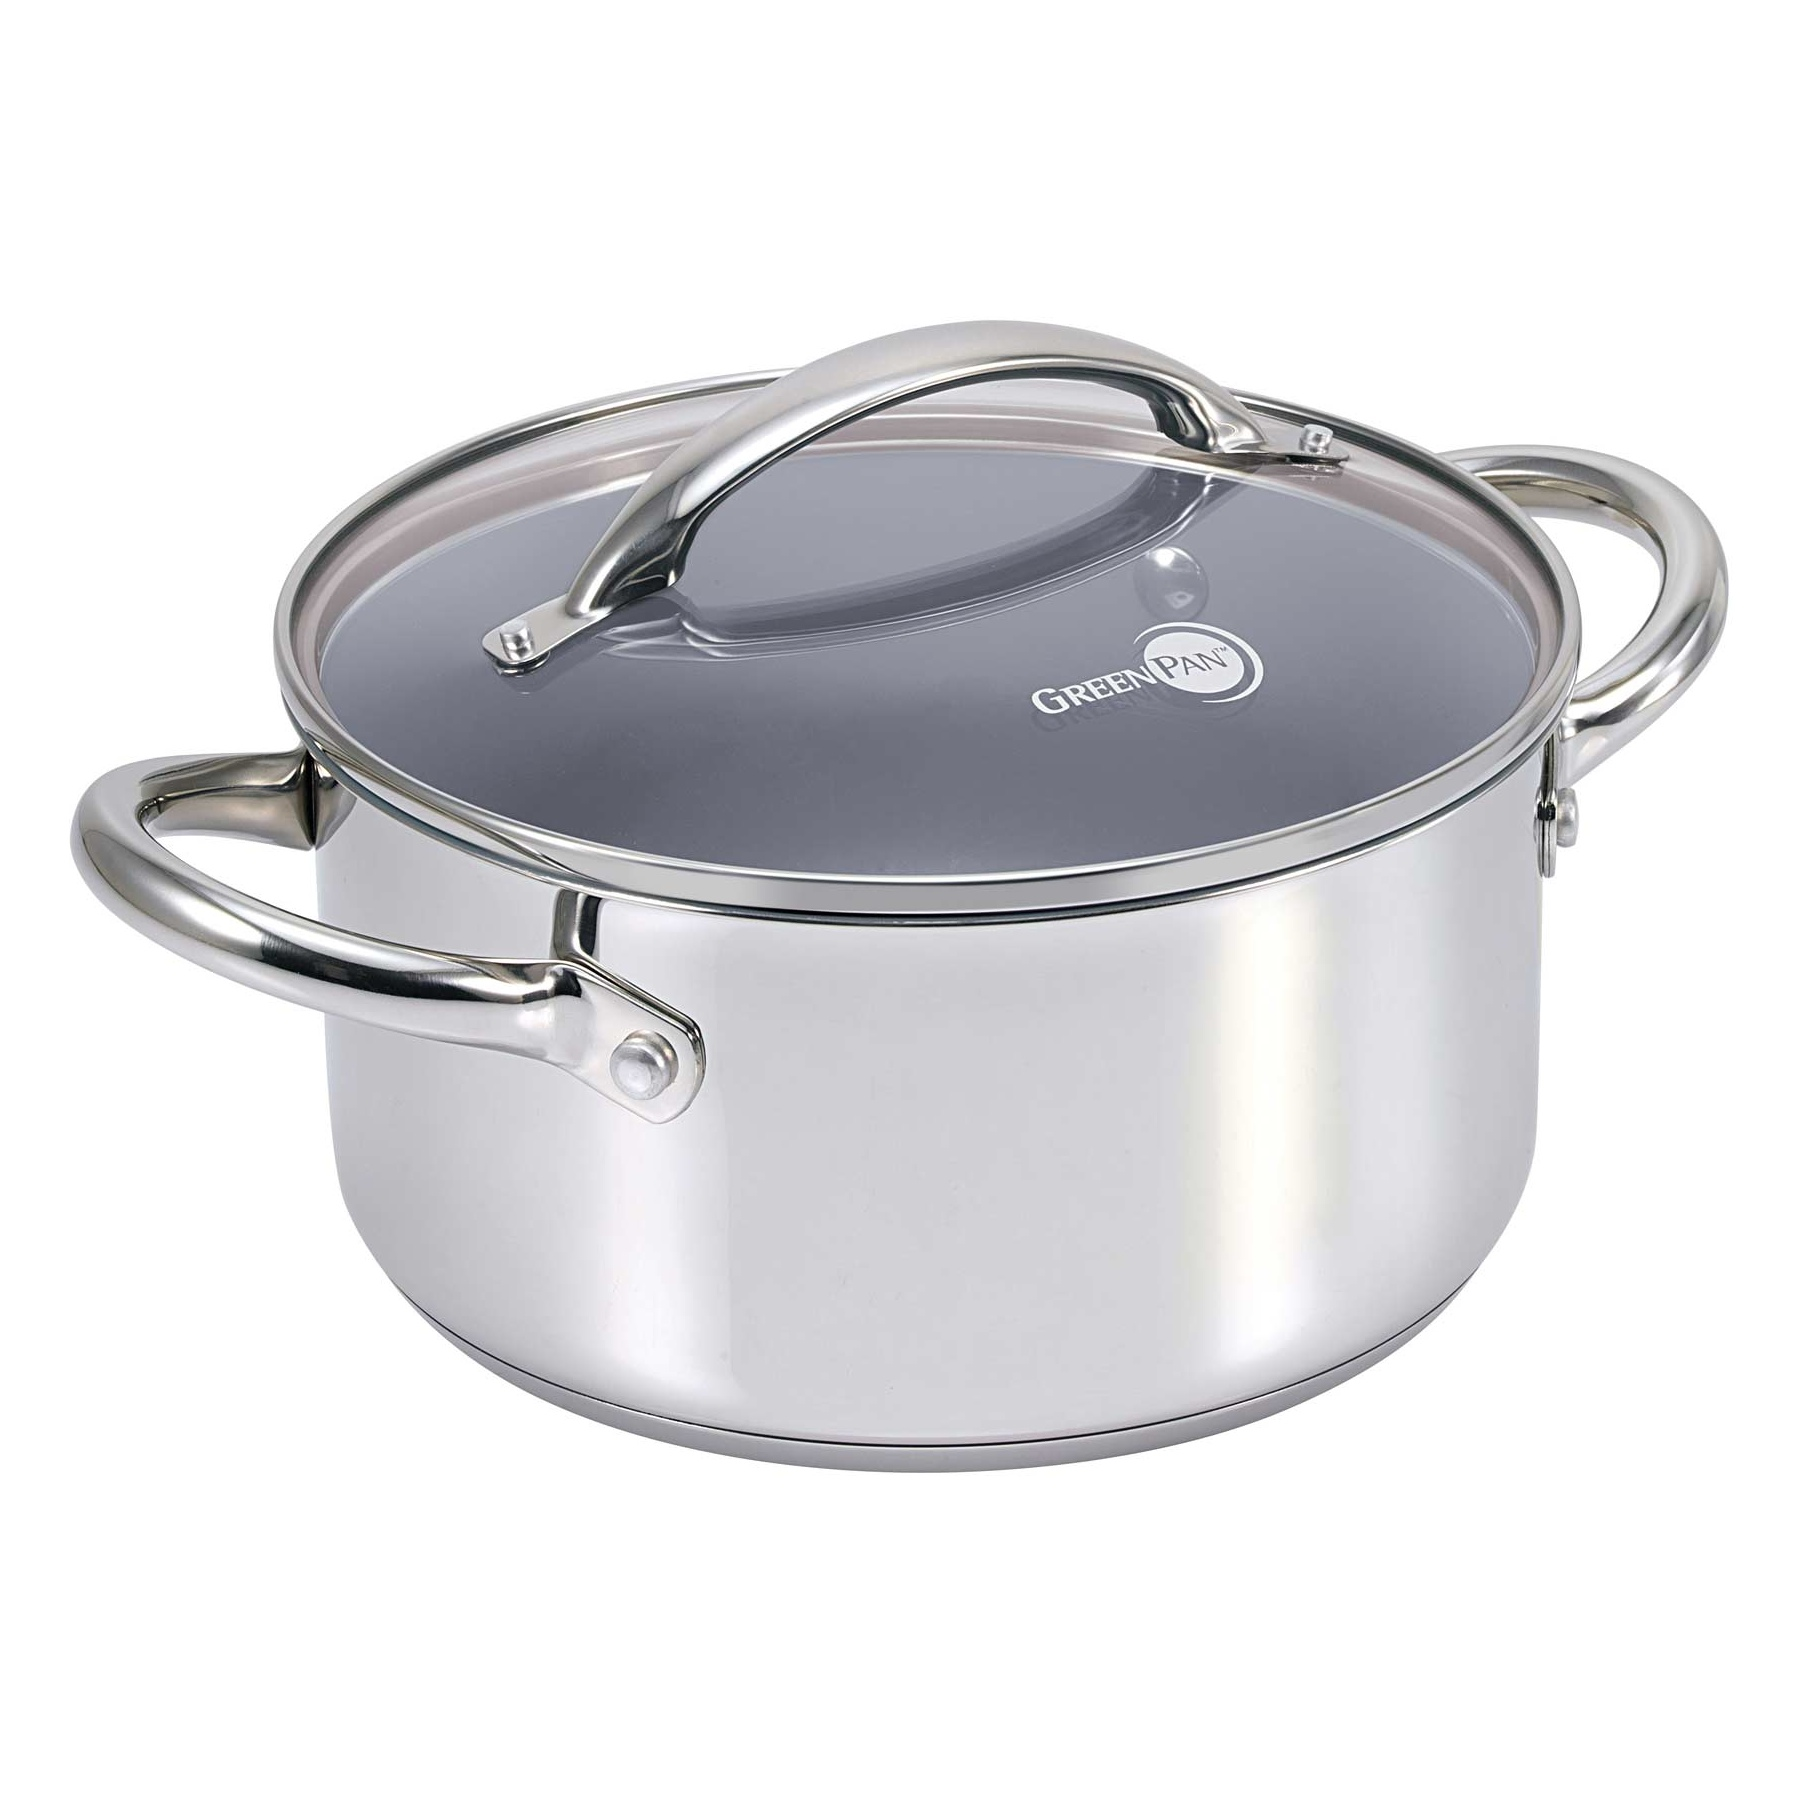 green pan miami stainless steel nonstick casserole with lid 24cm